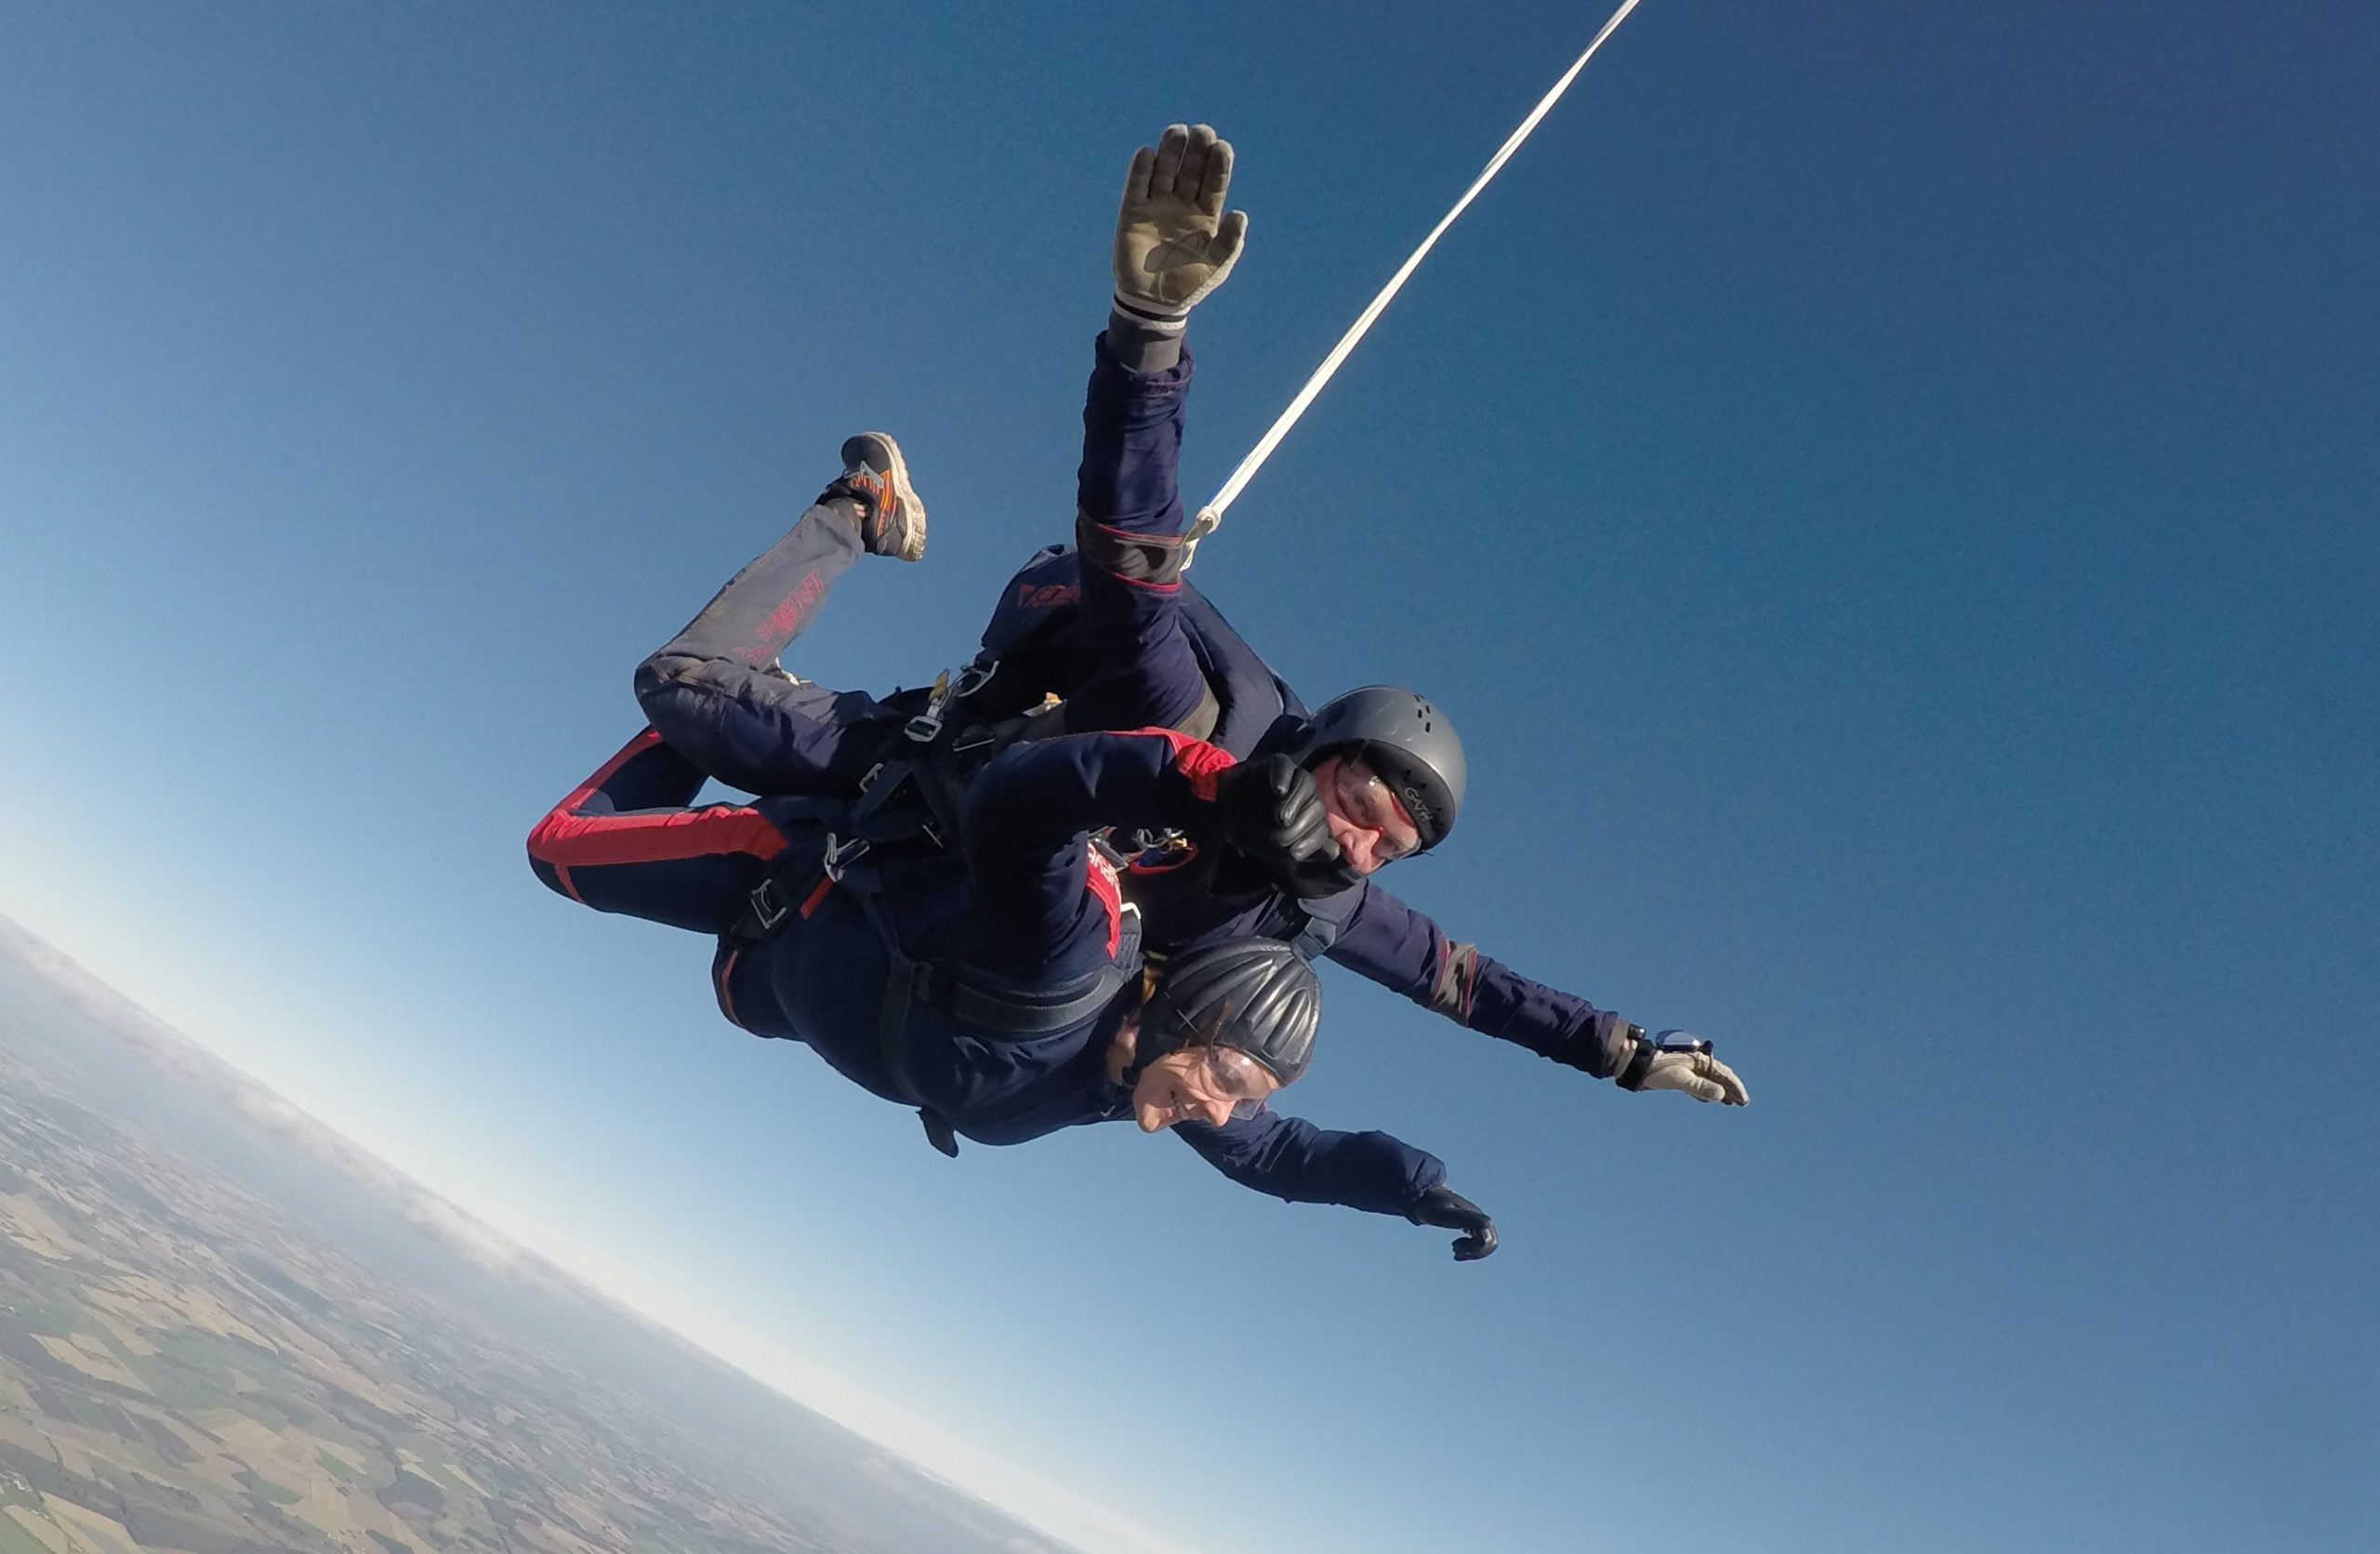 Julie Forster skydiving in support of VOCAL